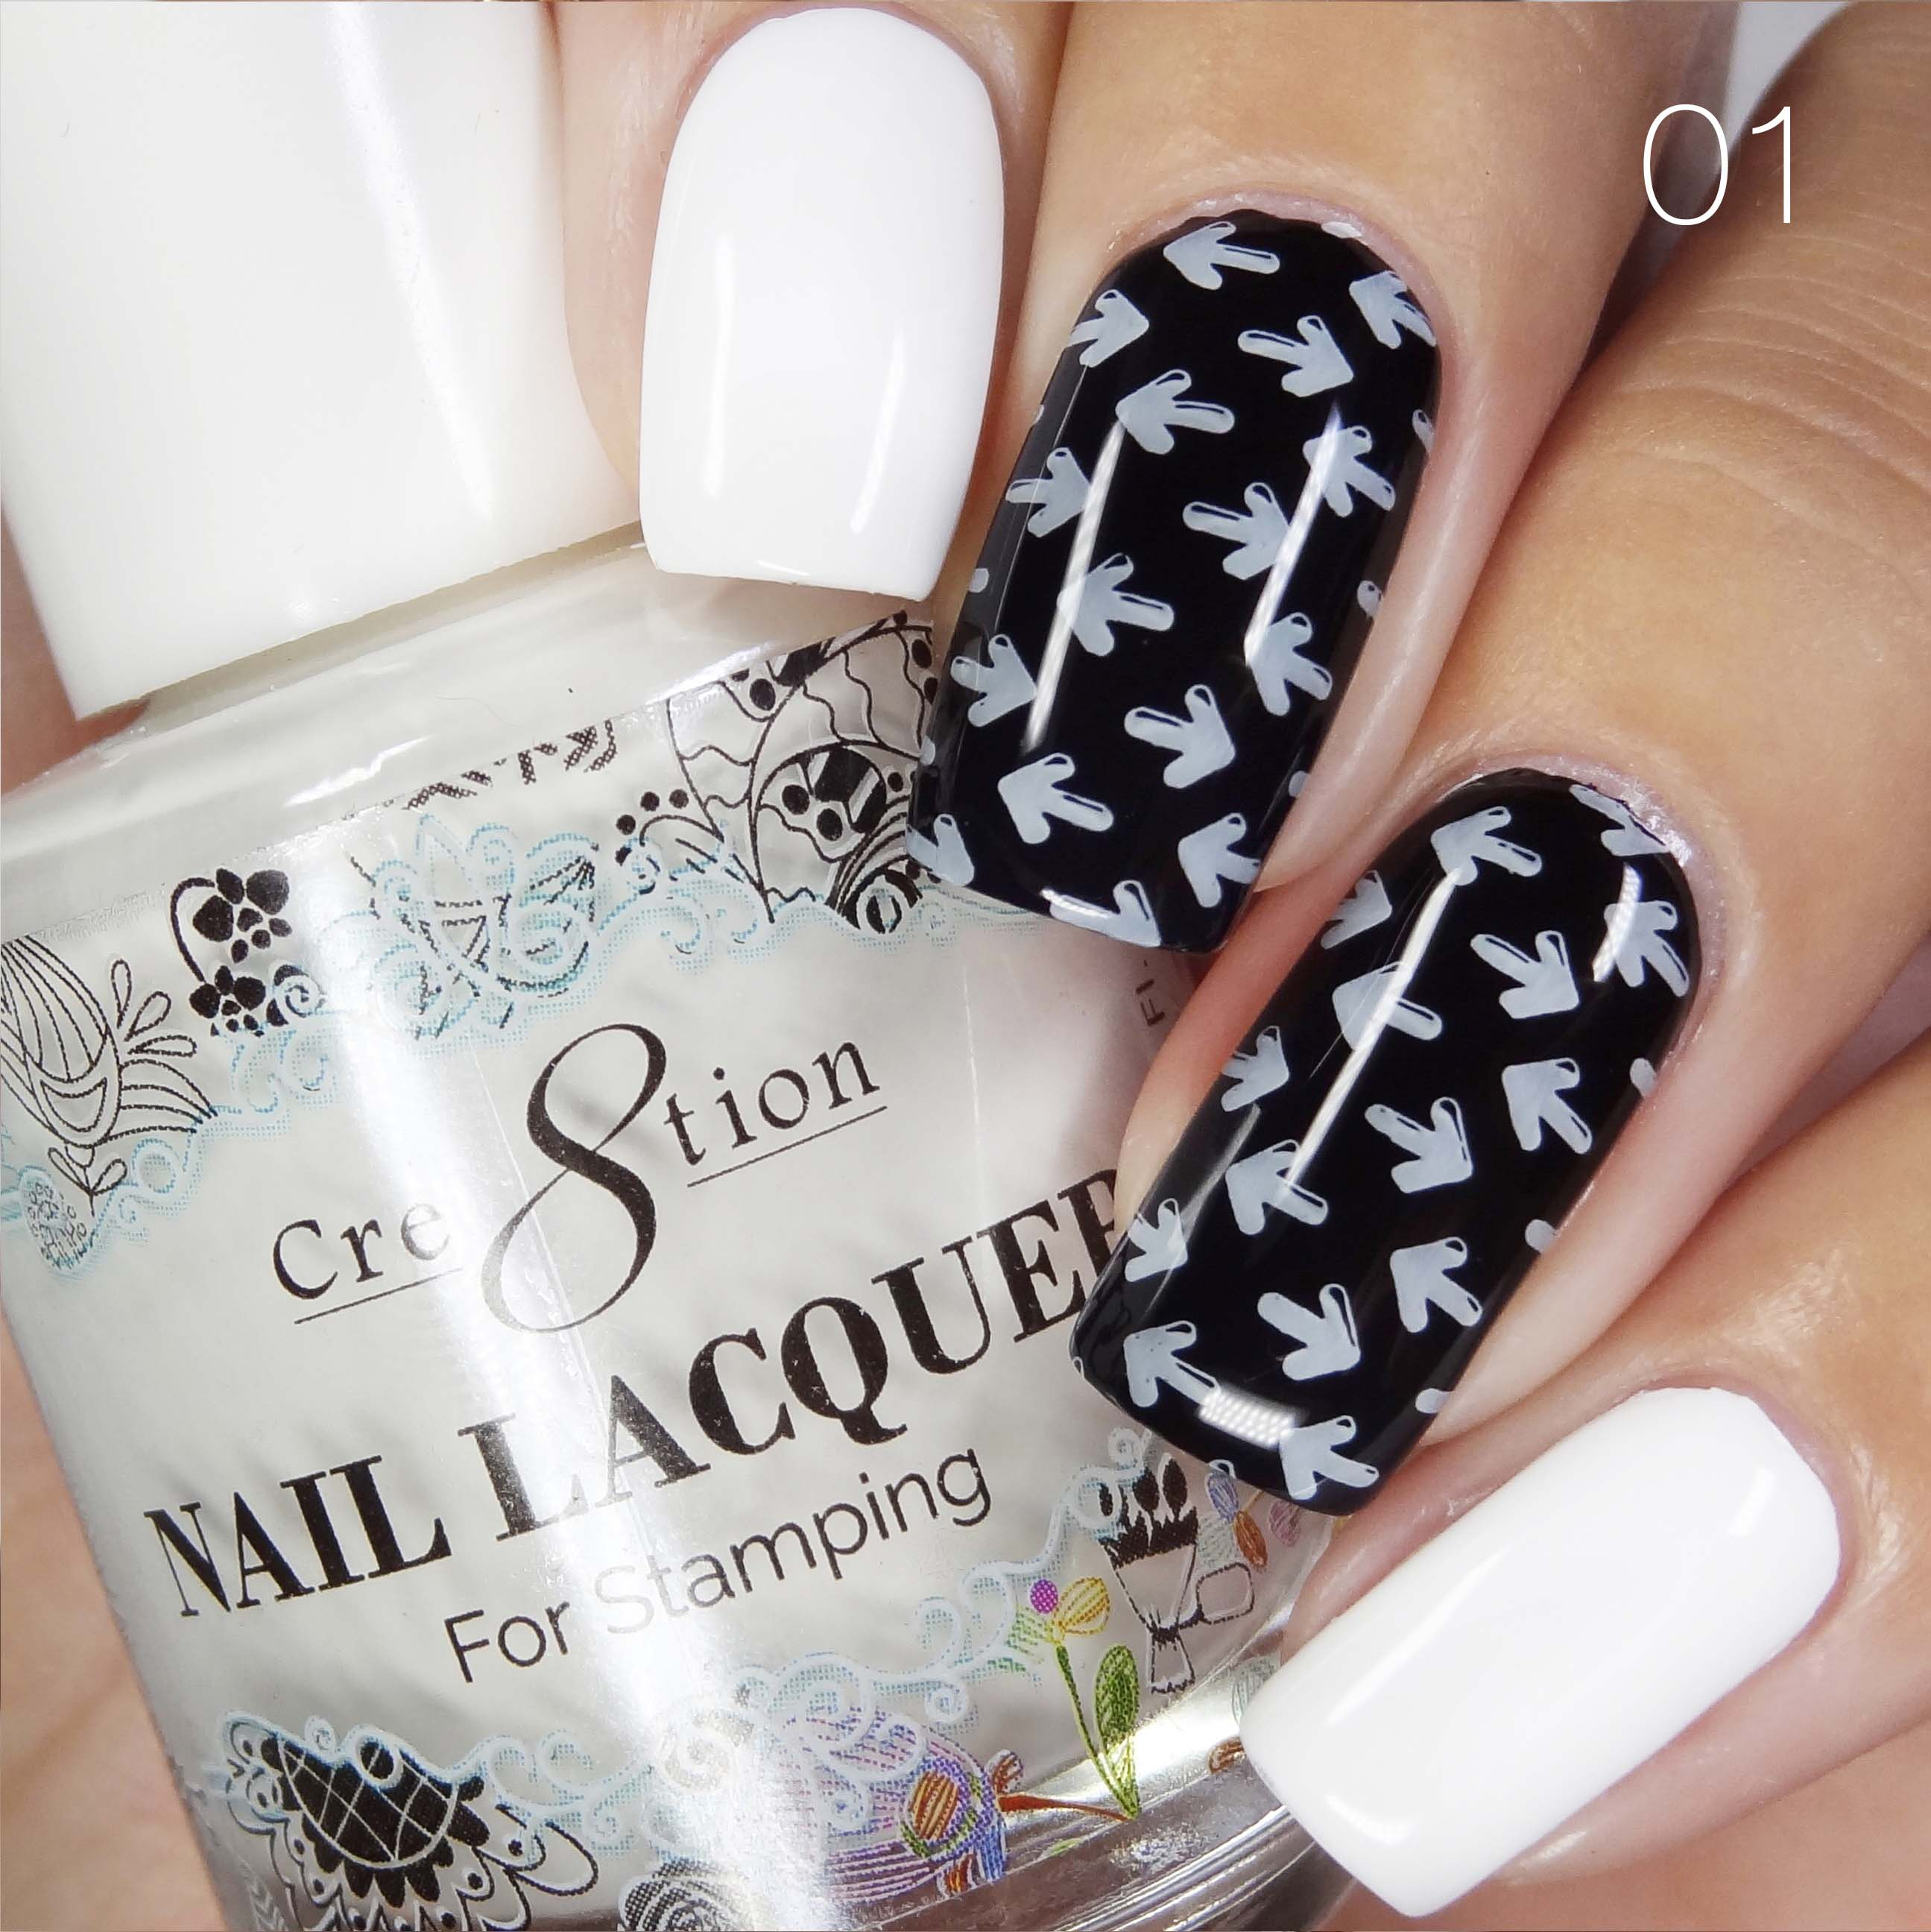 Cre8tion - Stamping Nail Art Lacquer 01